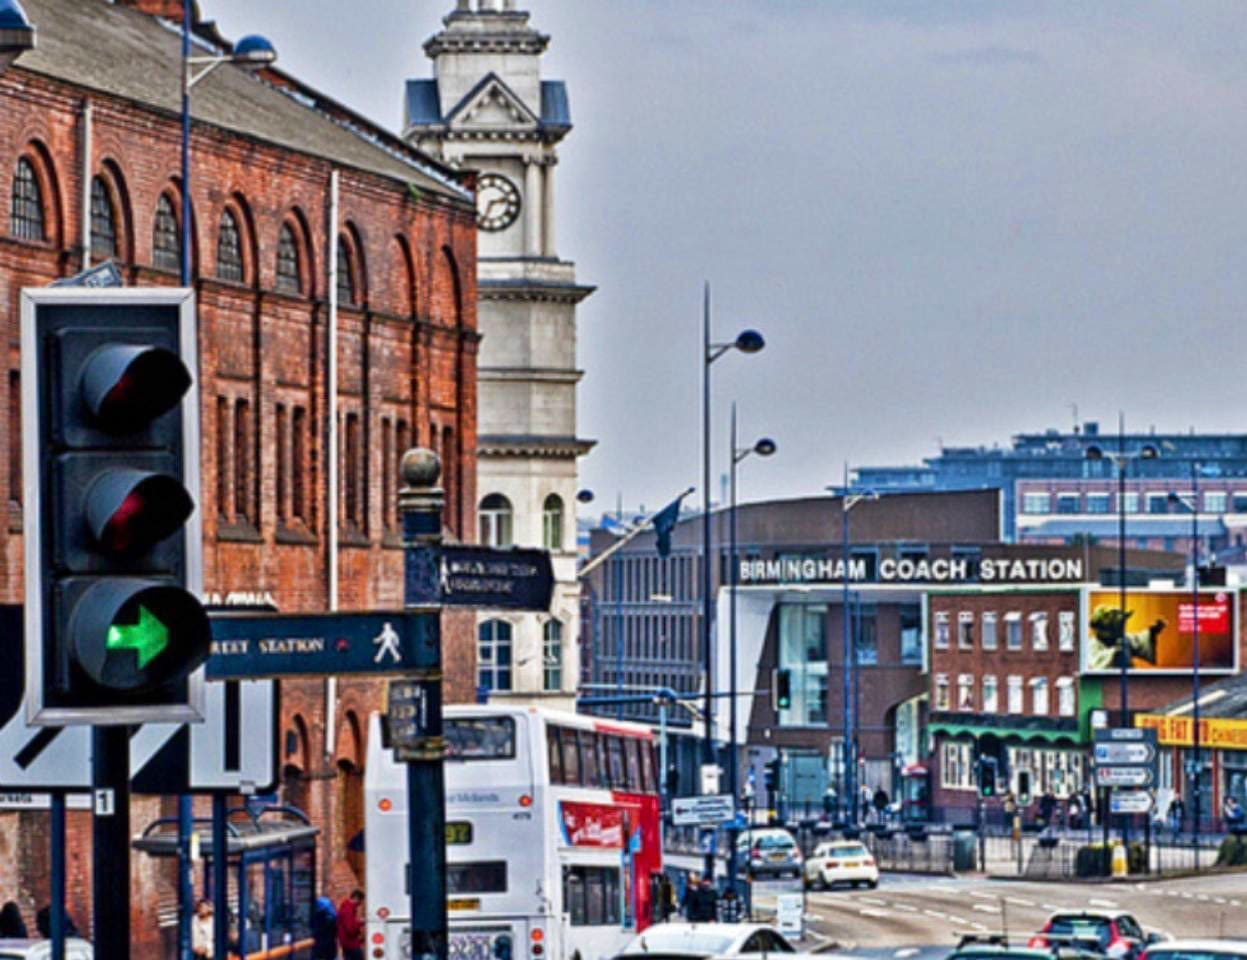 In the heart of Birmingham City centre